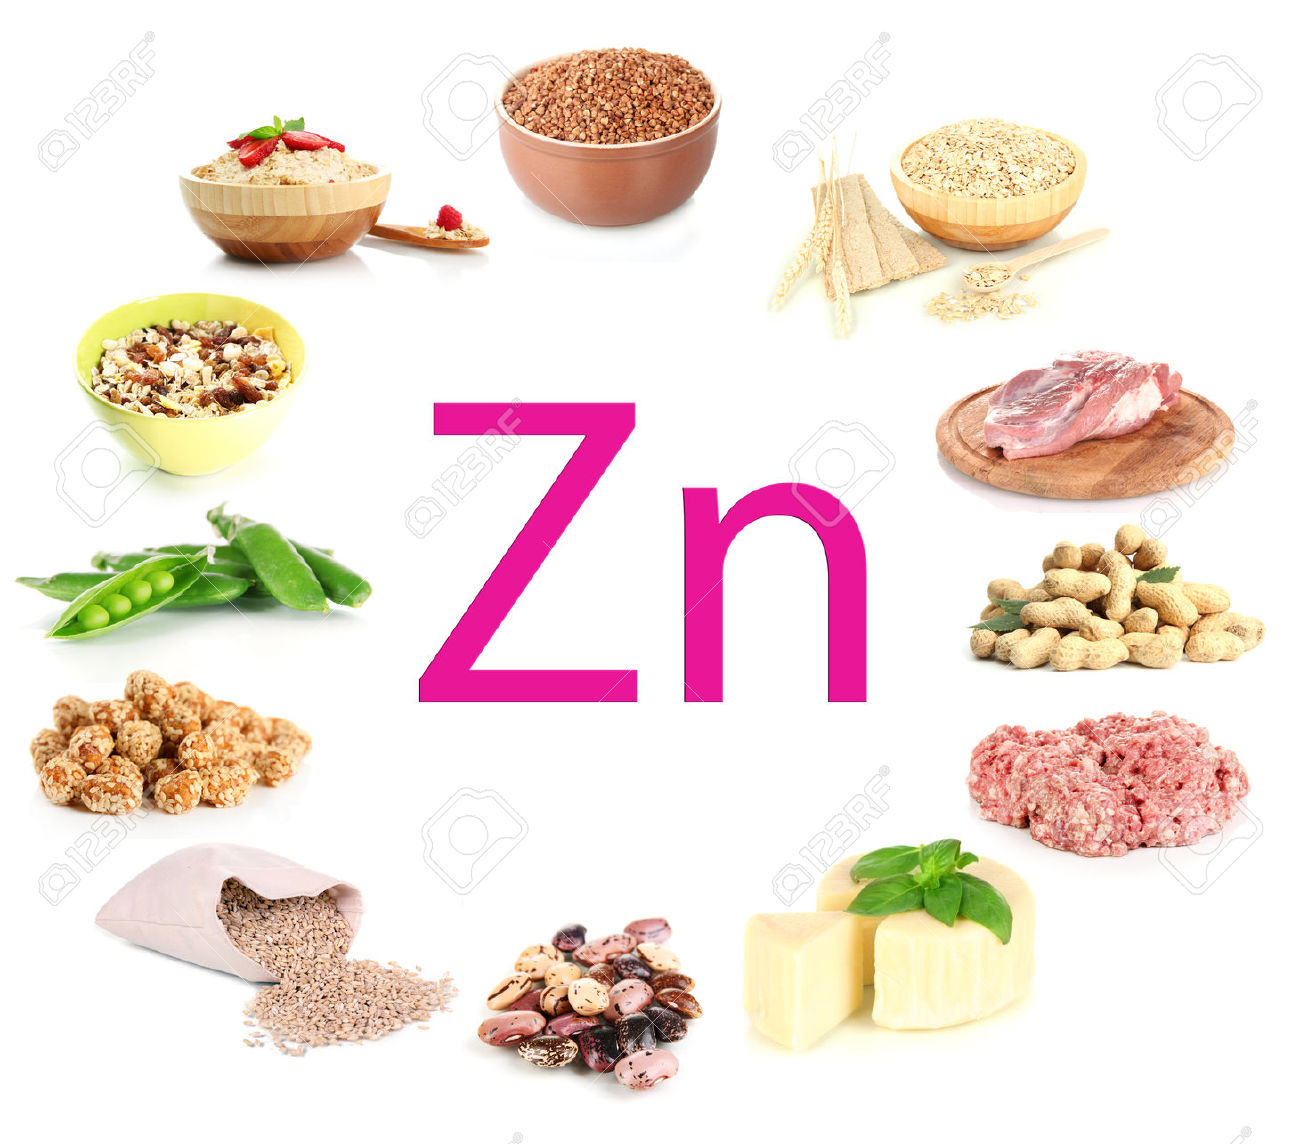 http://www.123rf.com/photo_23382881_collage-of-products-containing-zinc.html?term=zinc&vti=ni0135yvapi0b3yld8